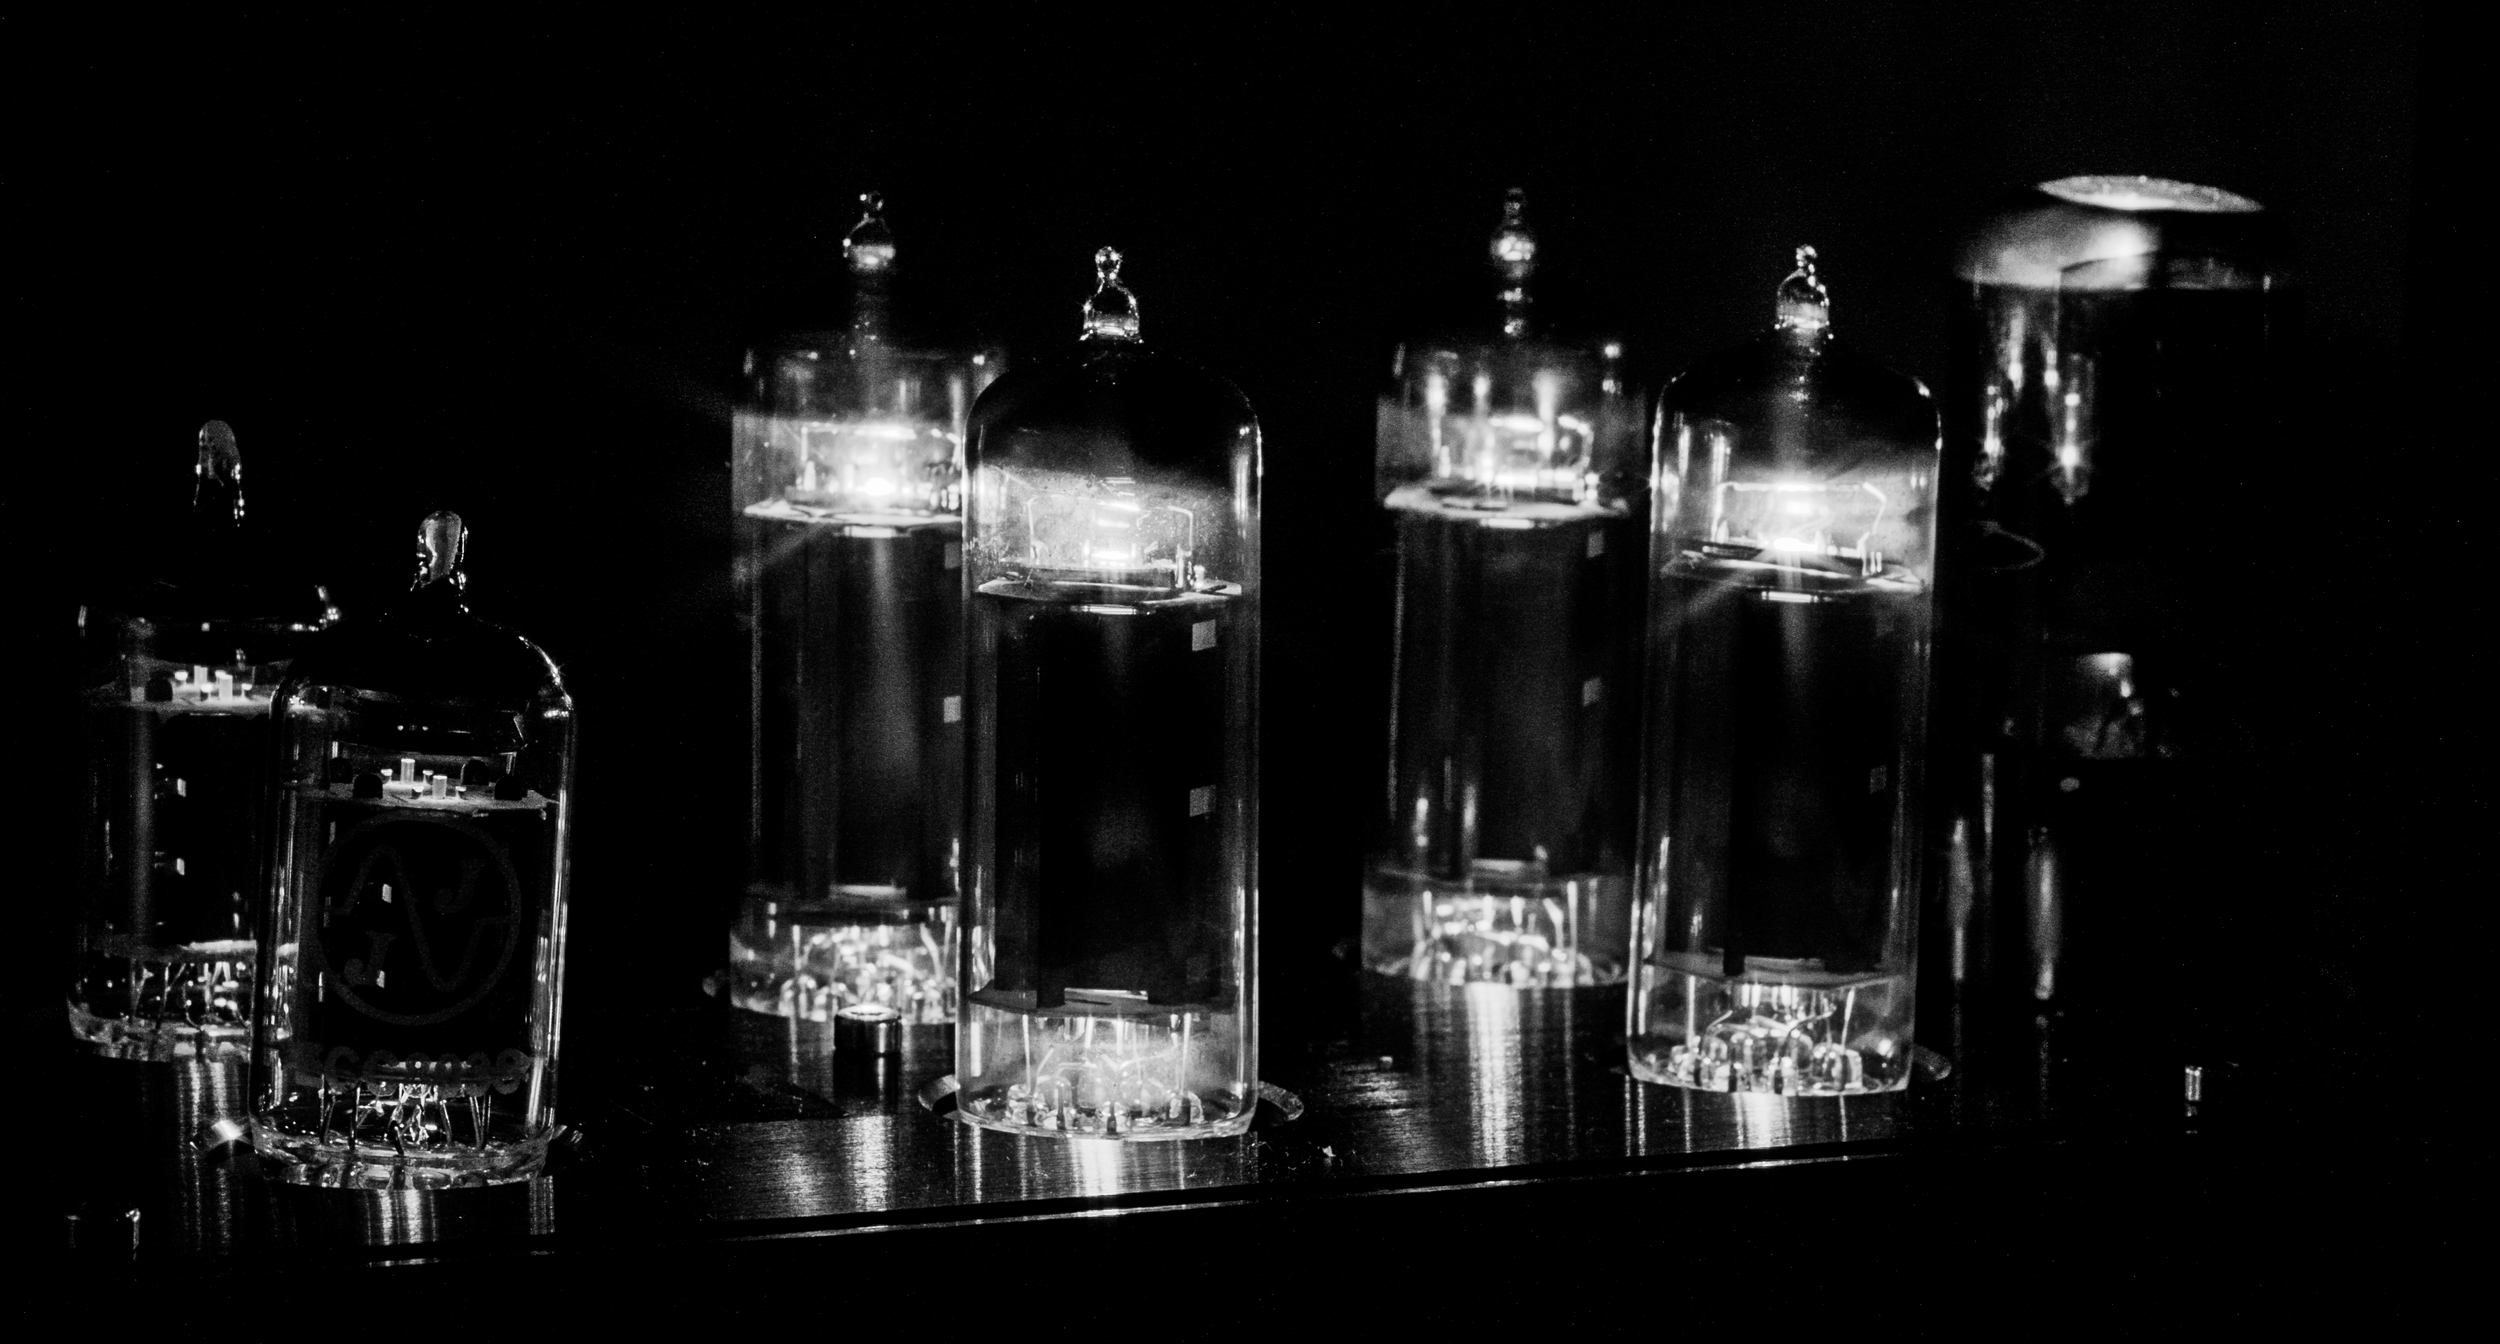 Another shot of the Kingsound M-20 tube amplifier glowing in the night. This amp help the Kingsound KS-H3 headphones to create some of the best sound quality in the world.